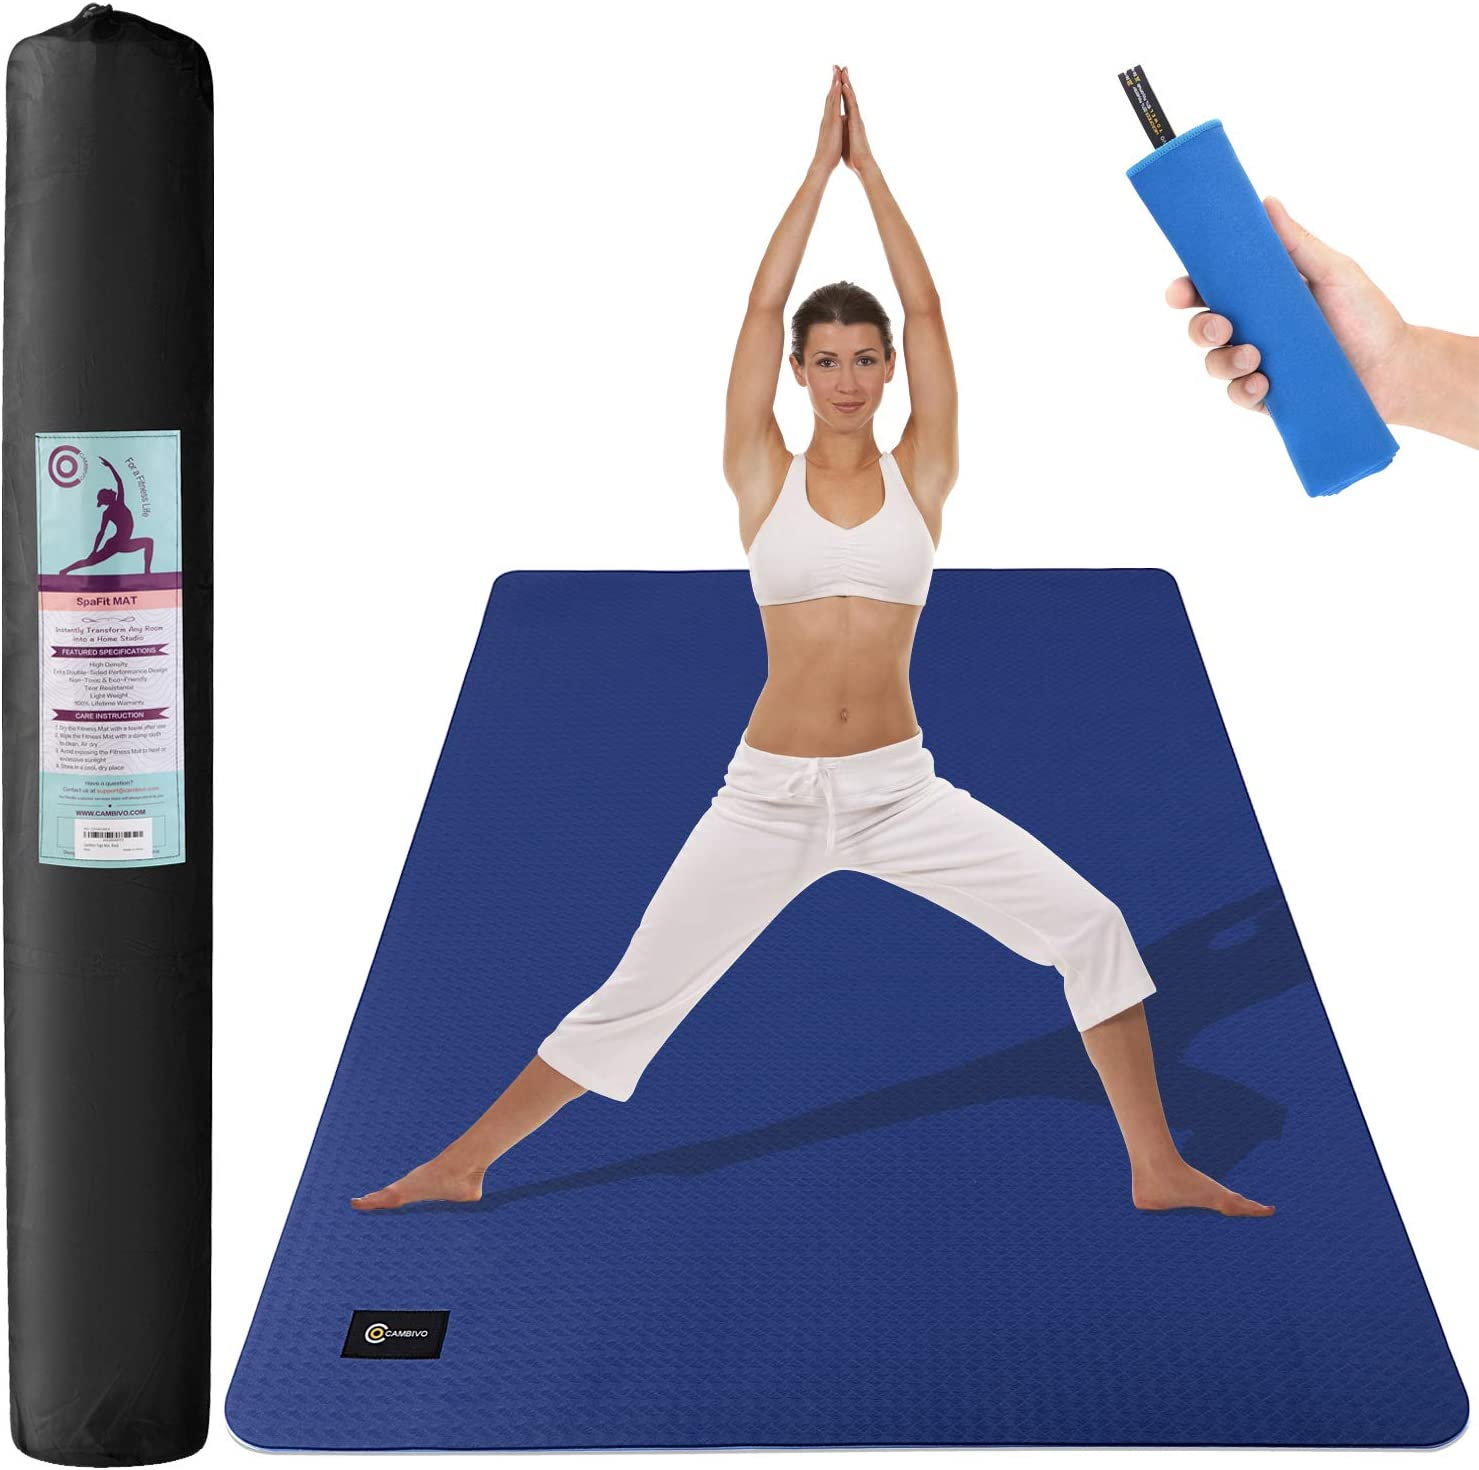 CAMBIVO Large Yoga Mat 6 x 4 x 6mm , Non-Slip Exercise Fitness Mat for Yoga, Pilates, Workout